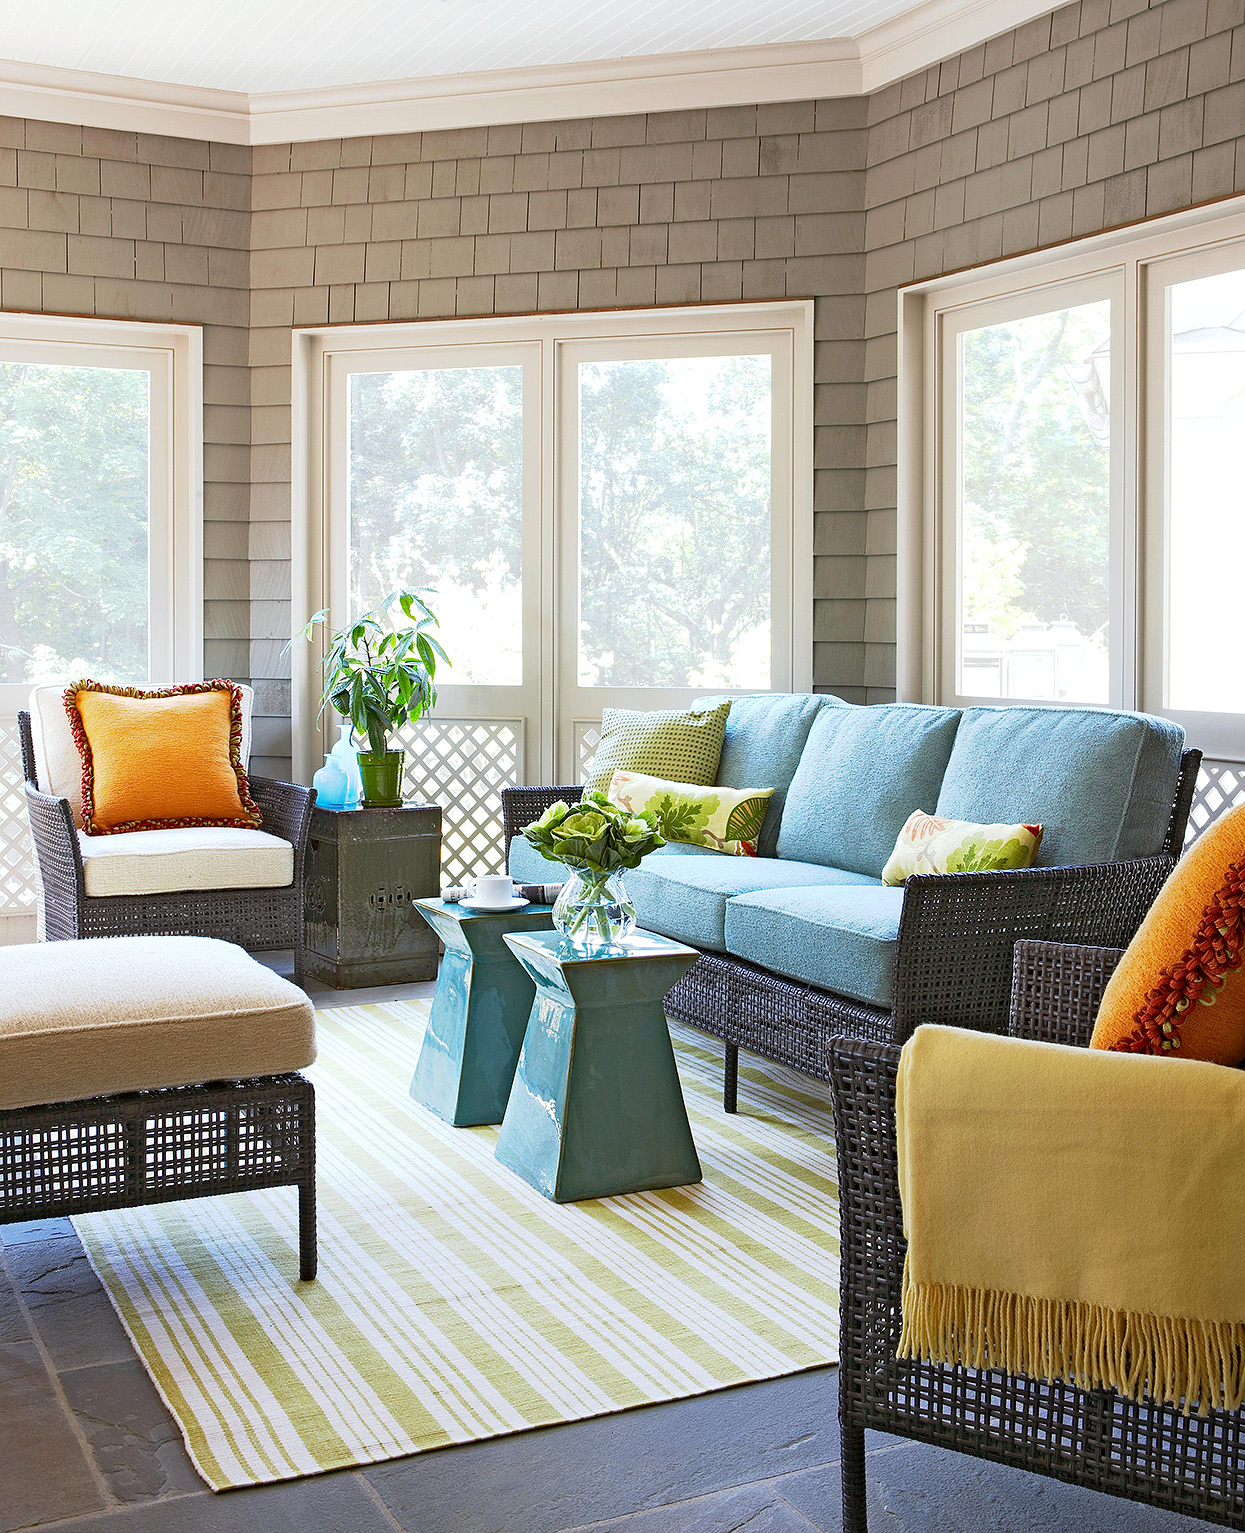 modern sunroom with visible shingles and pops of teal and orange